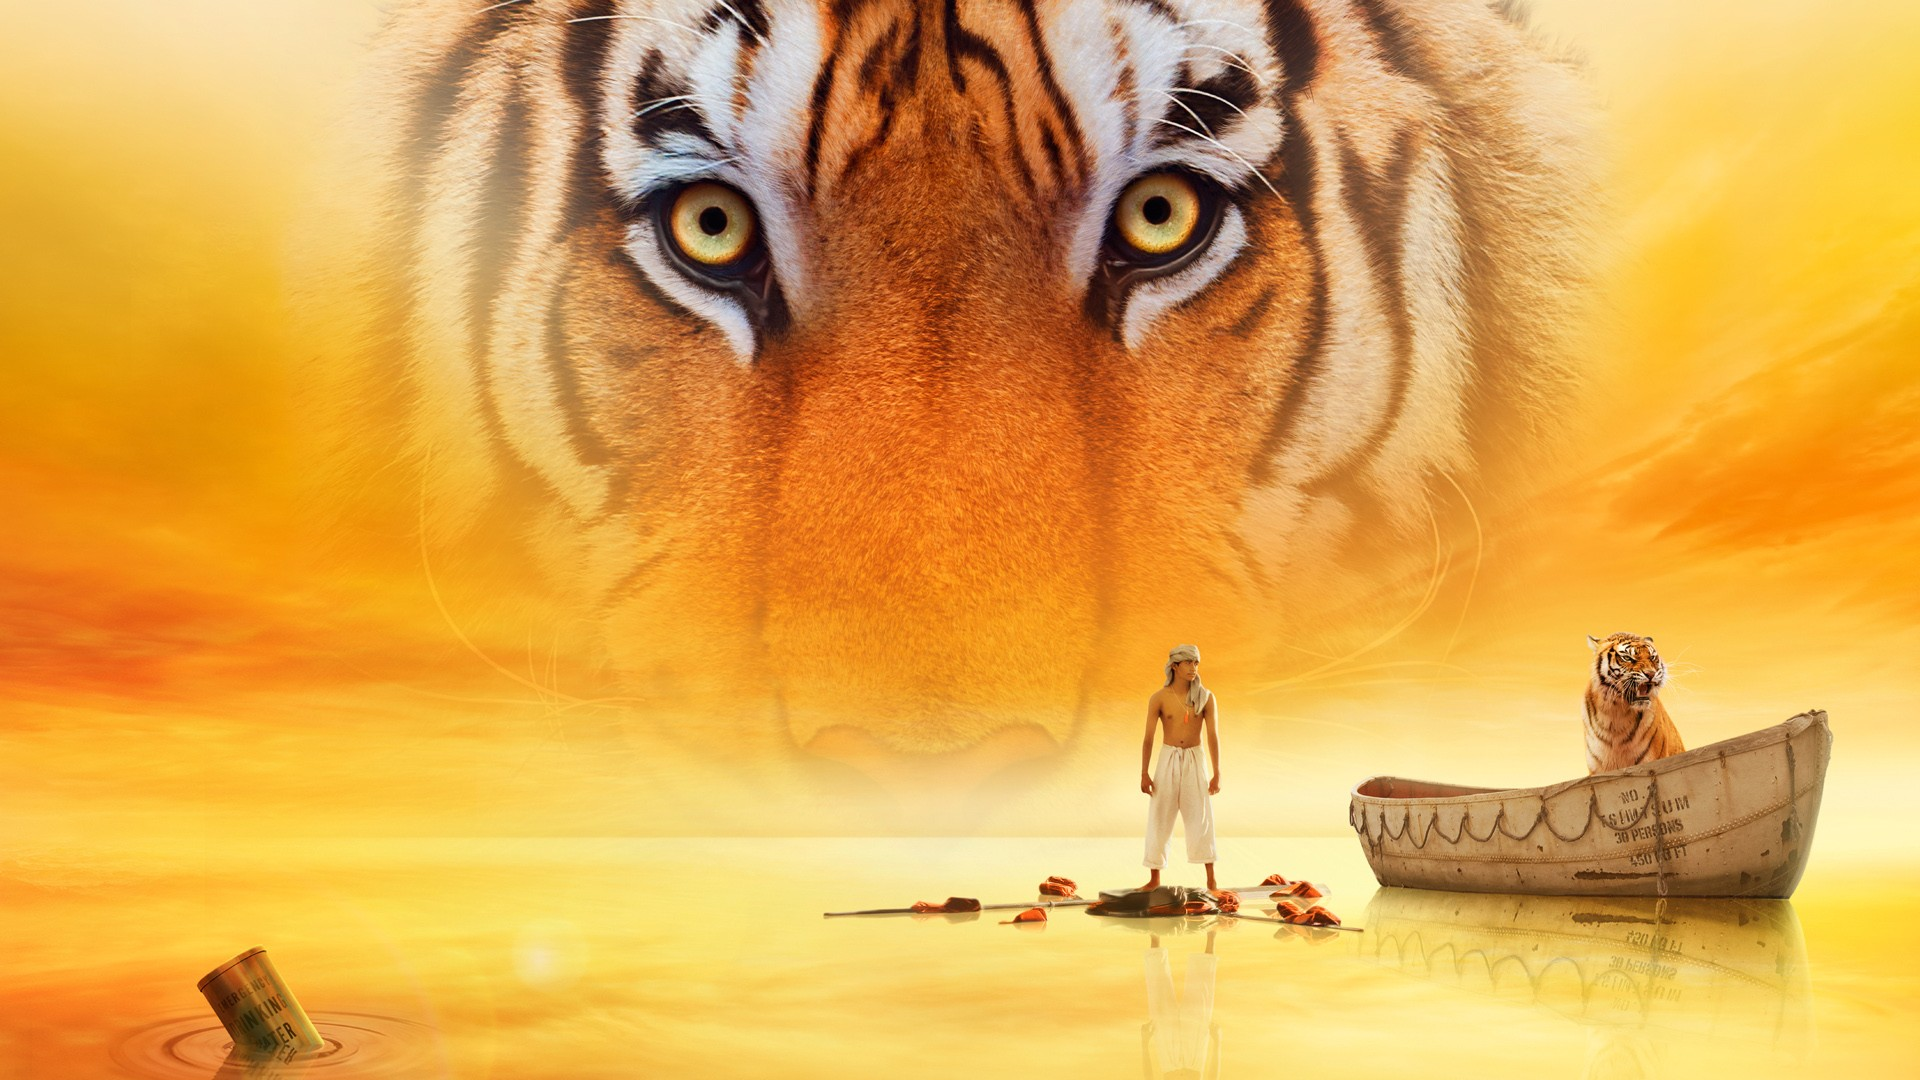 Cute Marvel Iphone Wallpaper Life Of Pi Movie Wallpapers Hd Wallpapers Id 12248